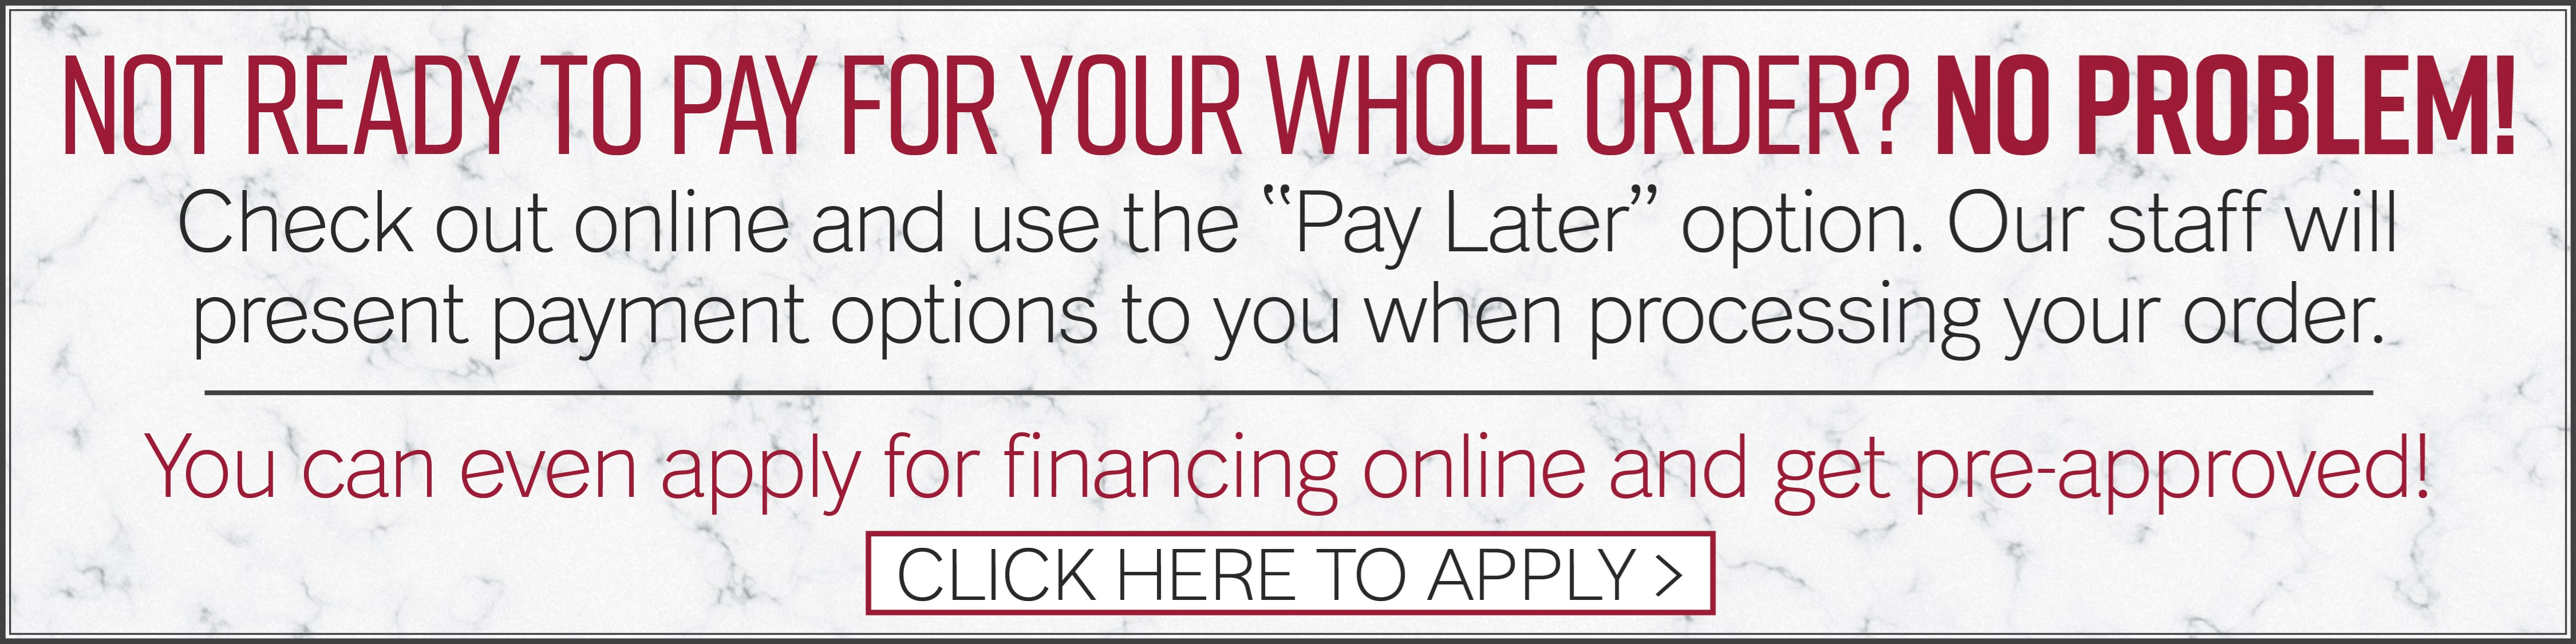 """Not ready to pay for your whole order? No problem!  Check out online and use the """"Pay Later"""" option."""